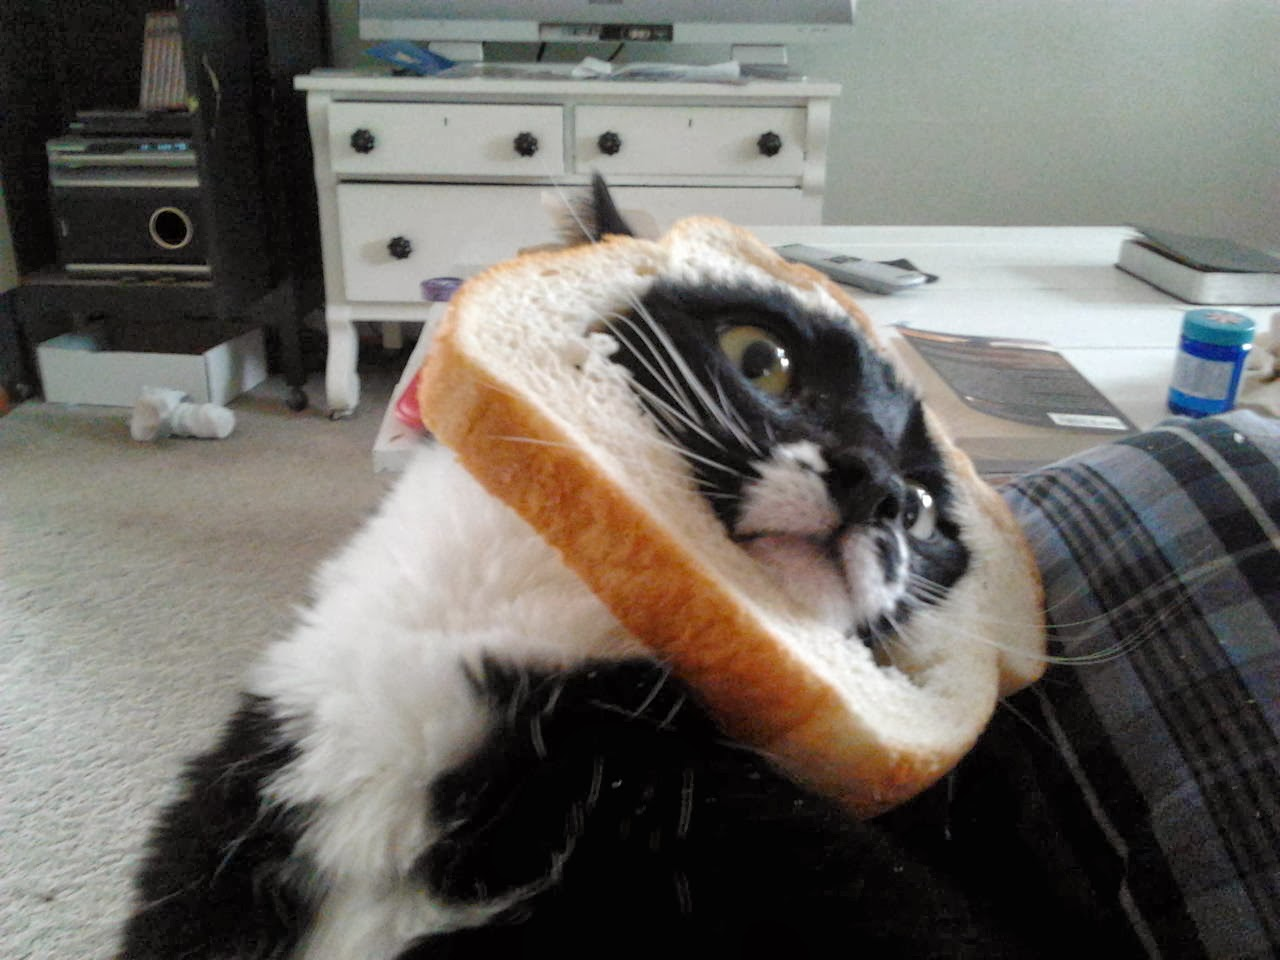 Funny cats - part 88 (40 pics + 10 gifs), cat inbread, cat stuck his face in a bread